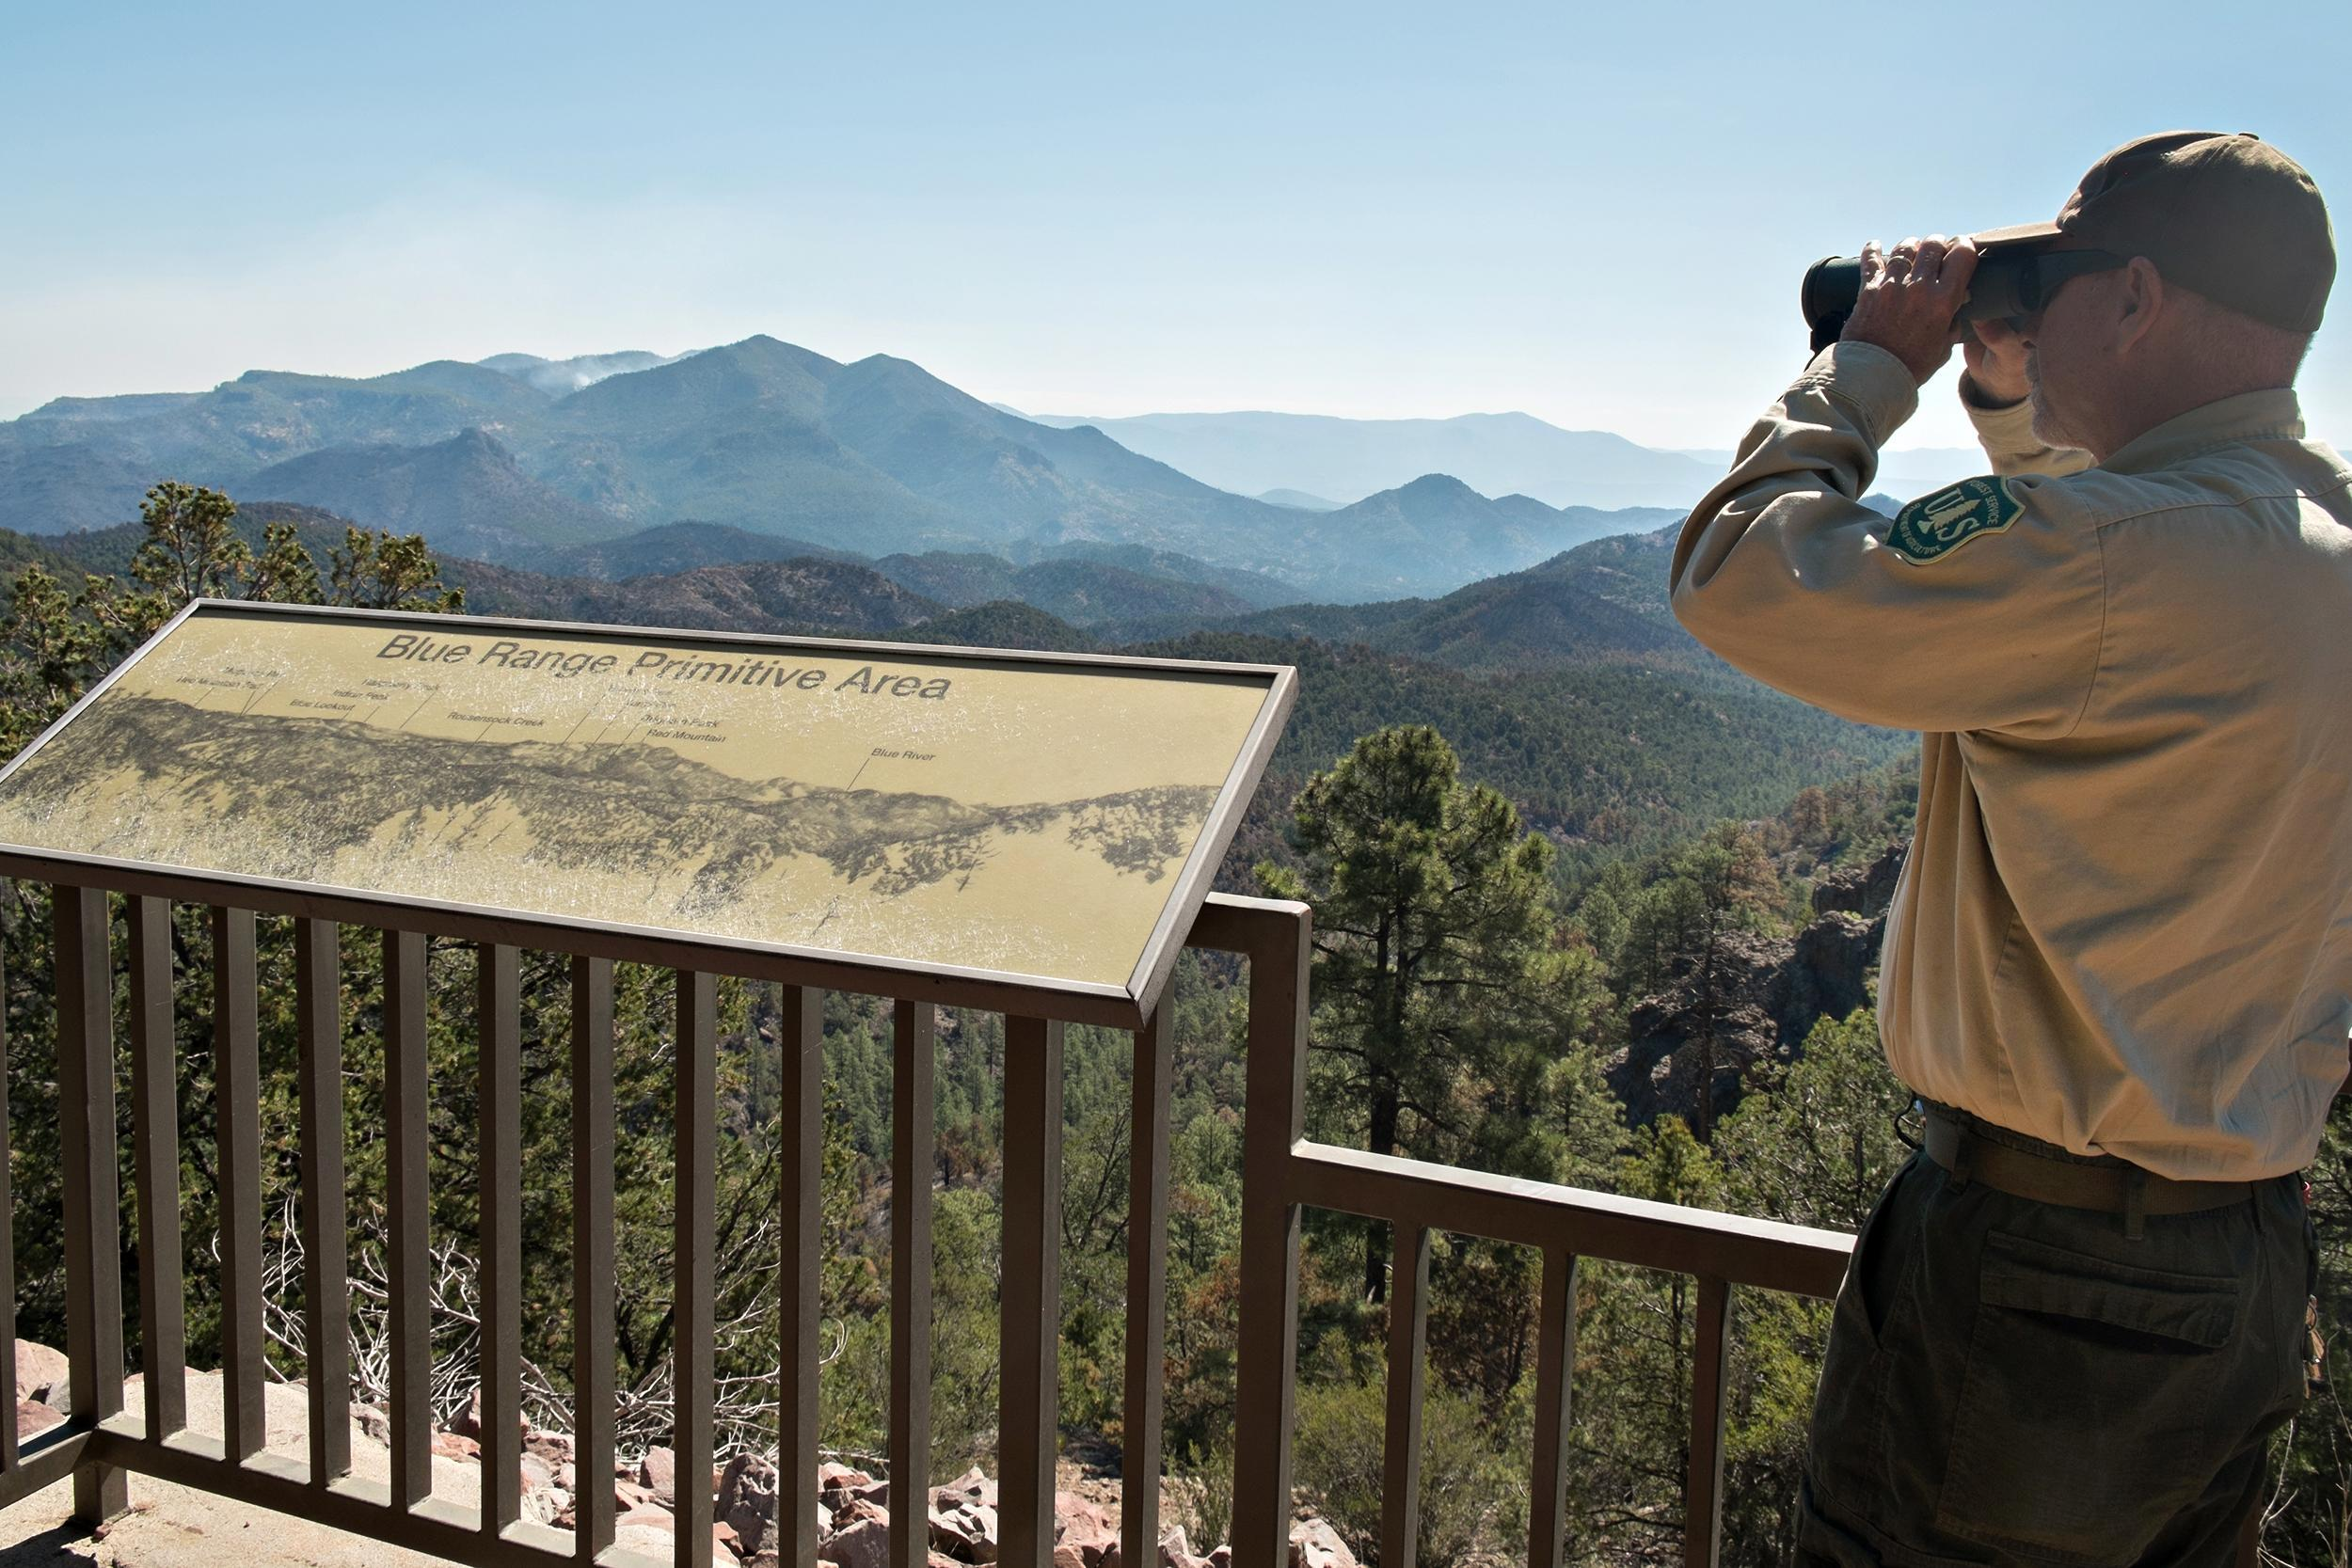 A daytime photo of a person in a Forest Service shirt standing at an outlook spot, looking through binoculars into the distant mountains. The mountains are layered, starting off dark blue, becoming progressively lighter as they fade away.